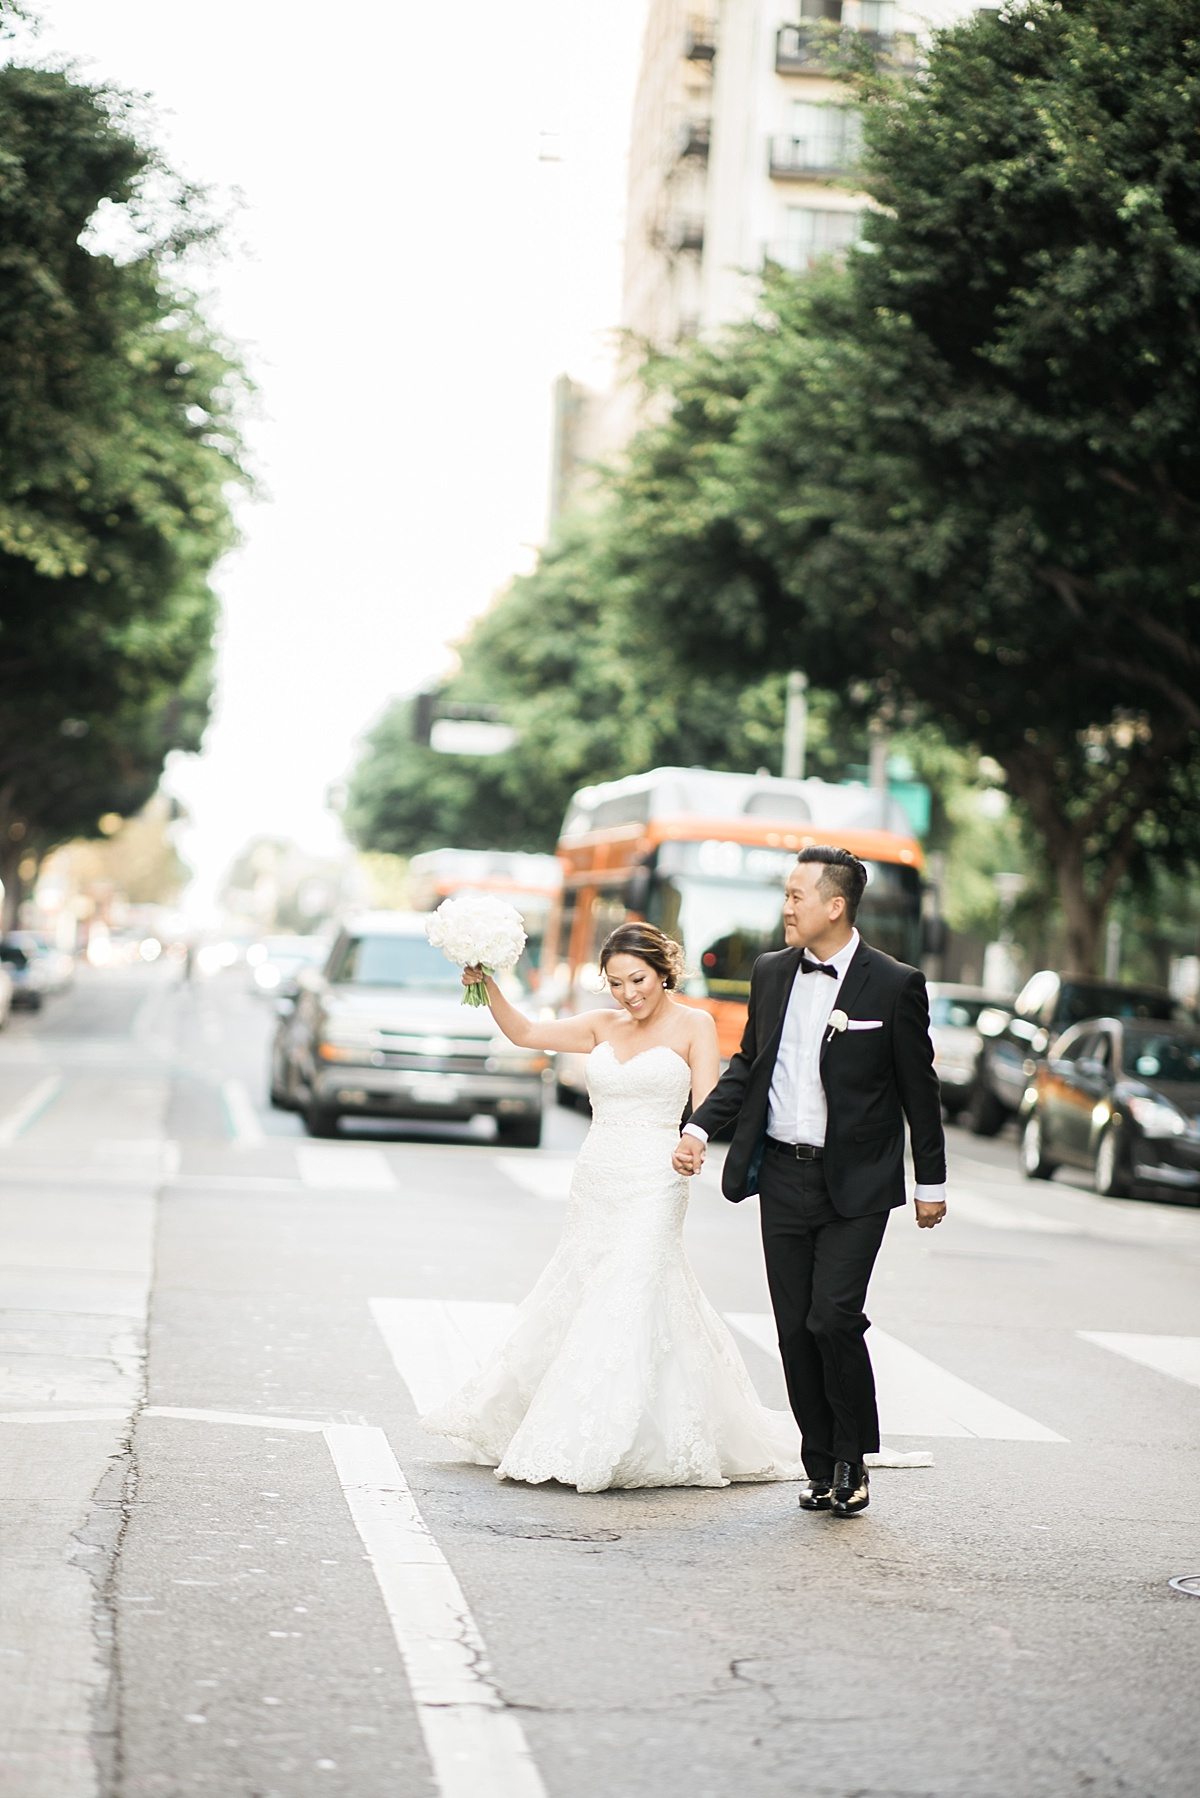 Alexandria-Ballrooms-Los-Angeles-Wedding-Photographer-Sarah_Darin-Carissa-Woo-Photography_0075.jpg